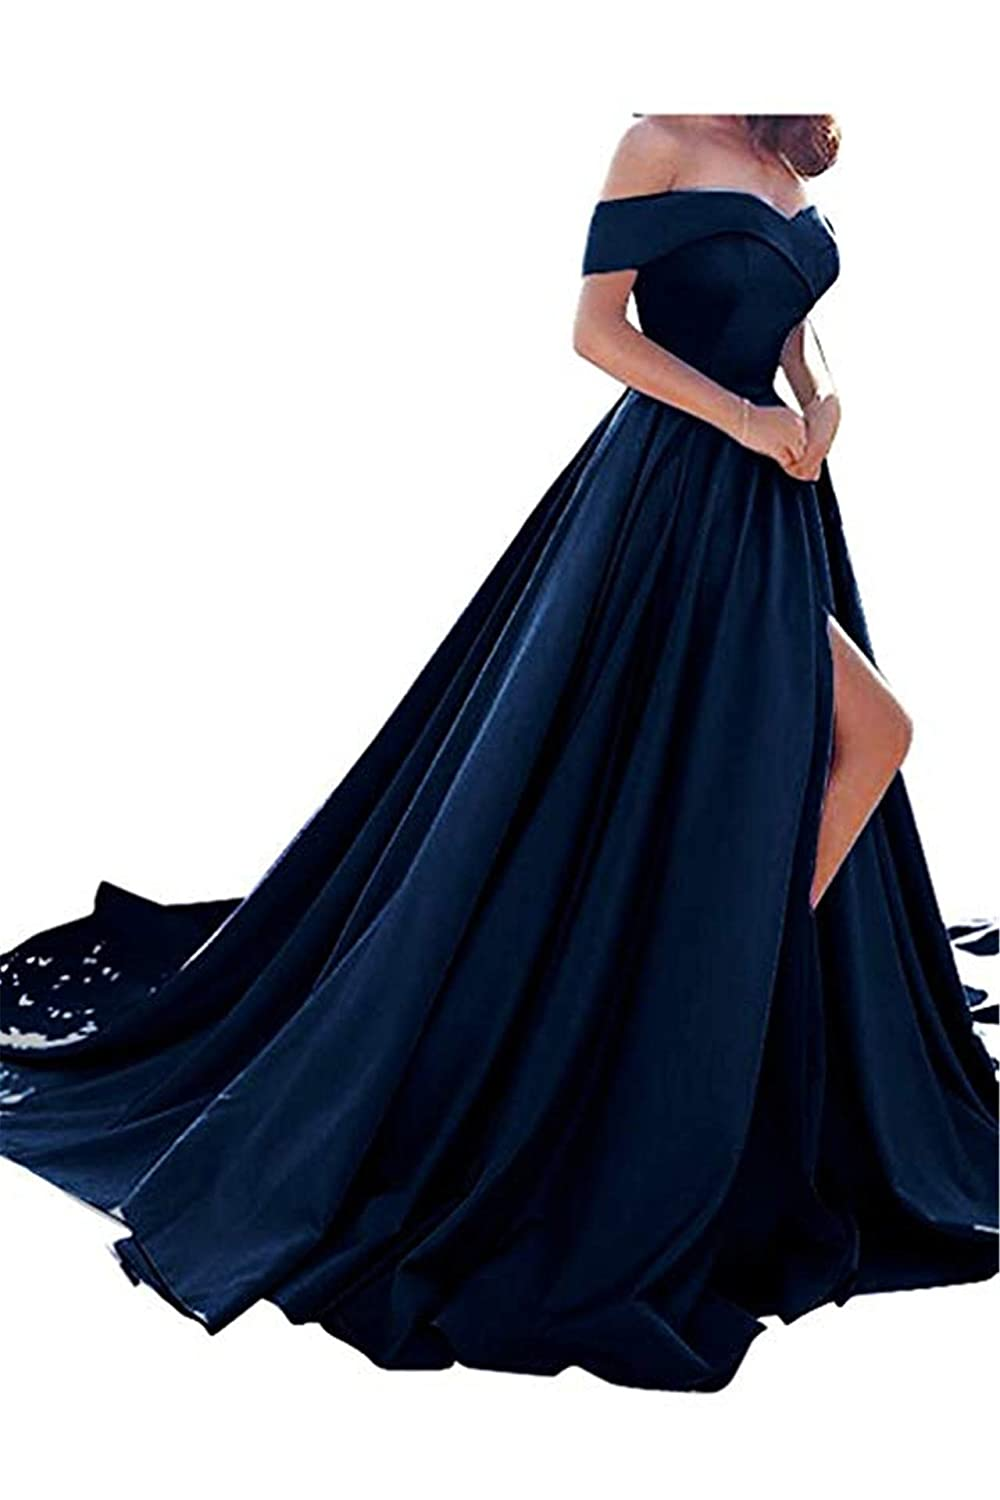 Navy bluee QiJunGe Women's Off The Shoulder A Line Prom Dress Split Satin Formal Evening Gowns Long